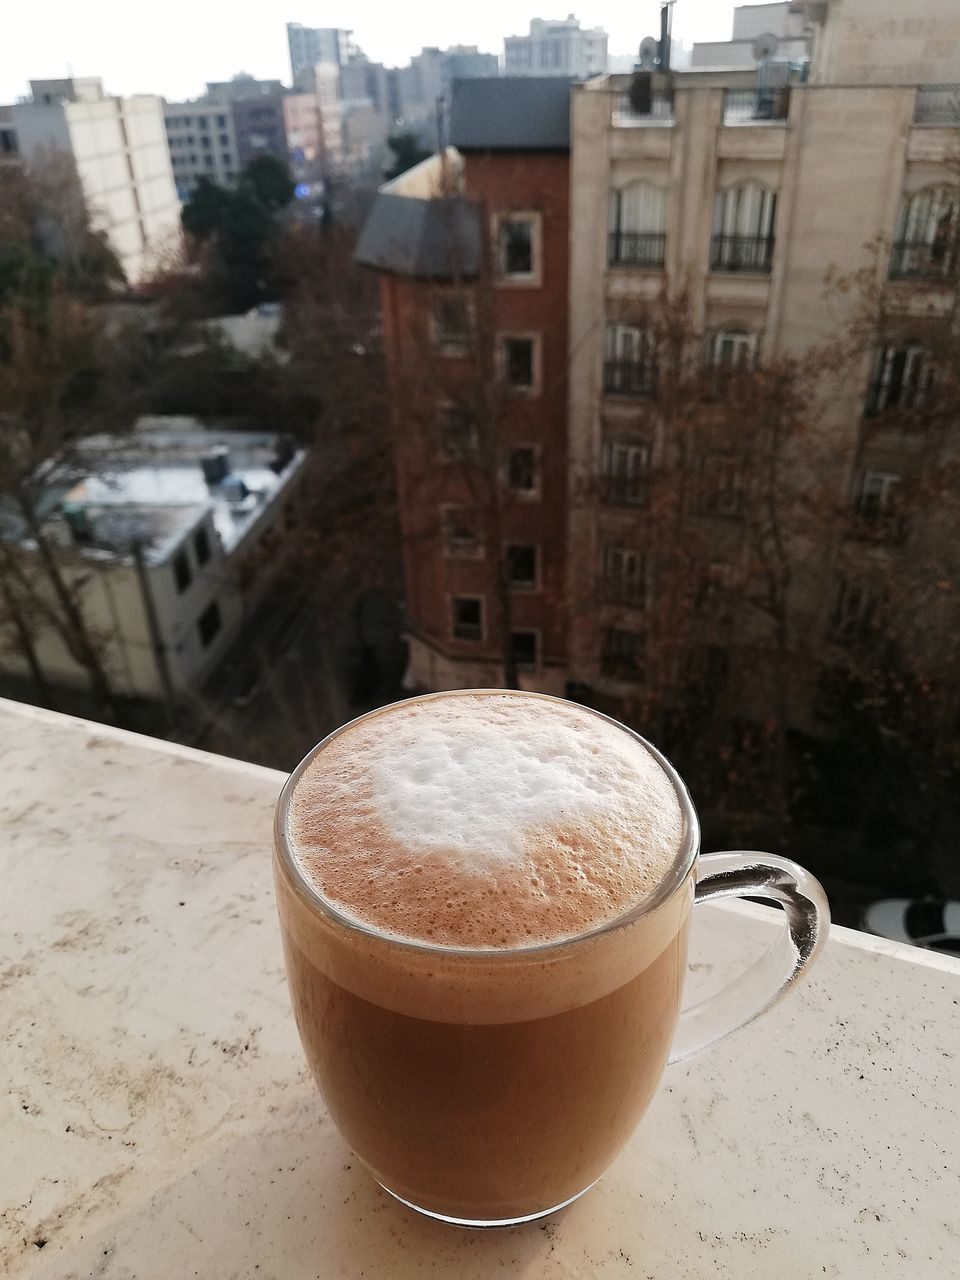 CLOSE-UP OF COFFEE ON TABLE AGAINST BUILDINGS